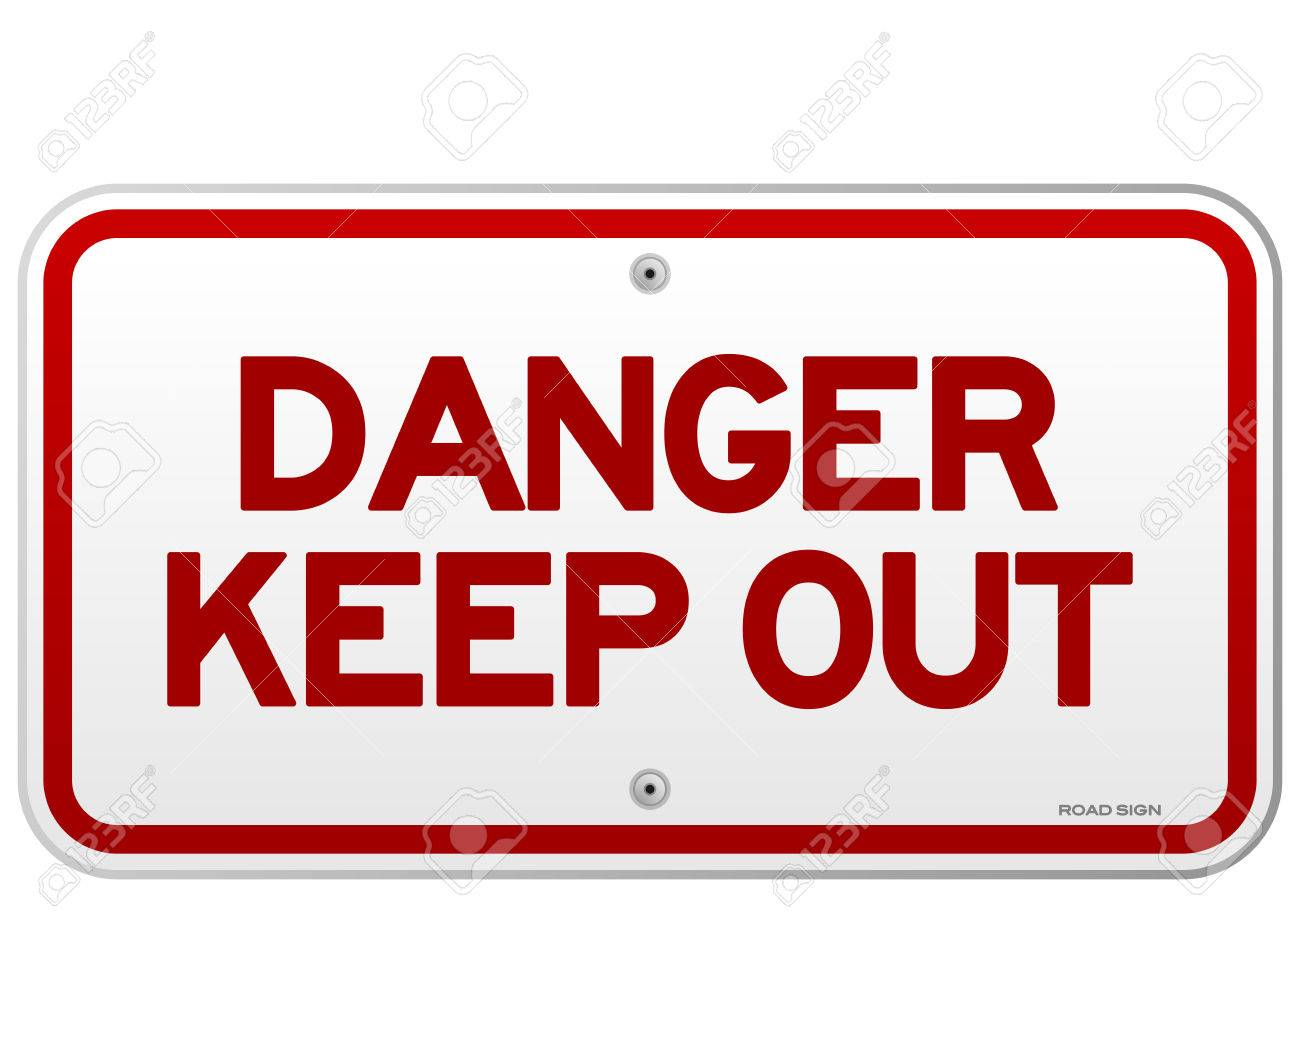 Danger Keep Out Notice Stock Vector - 22963642